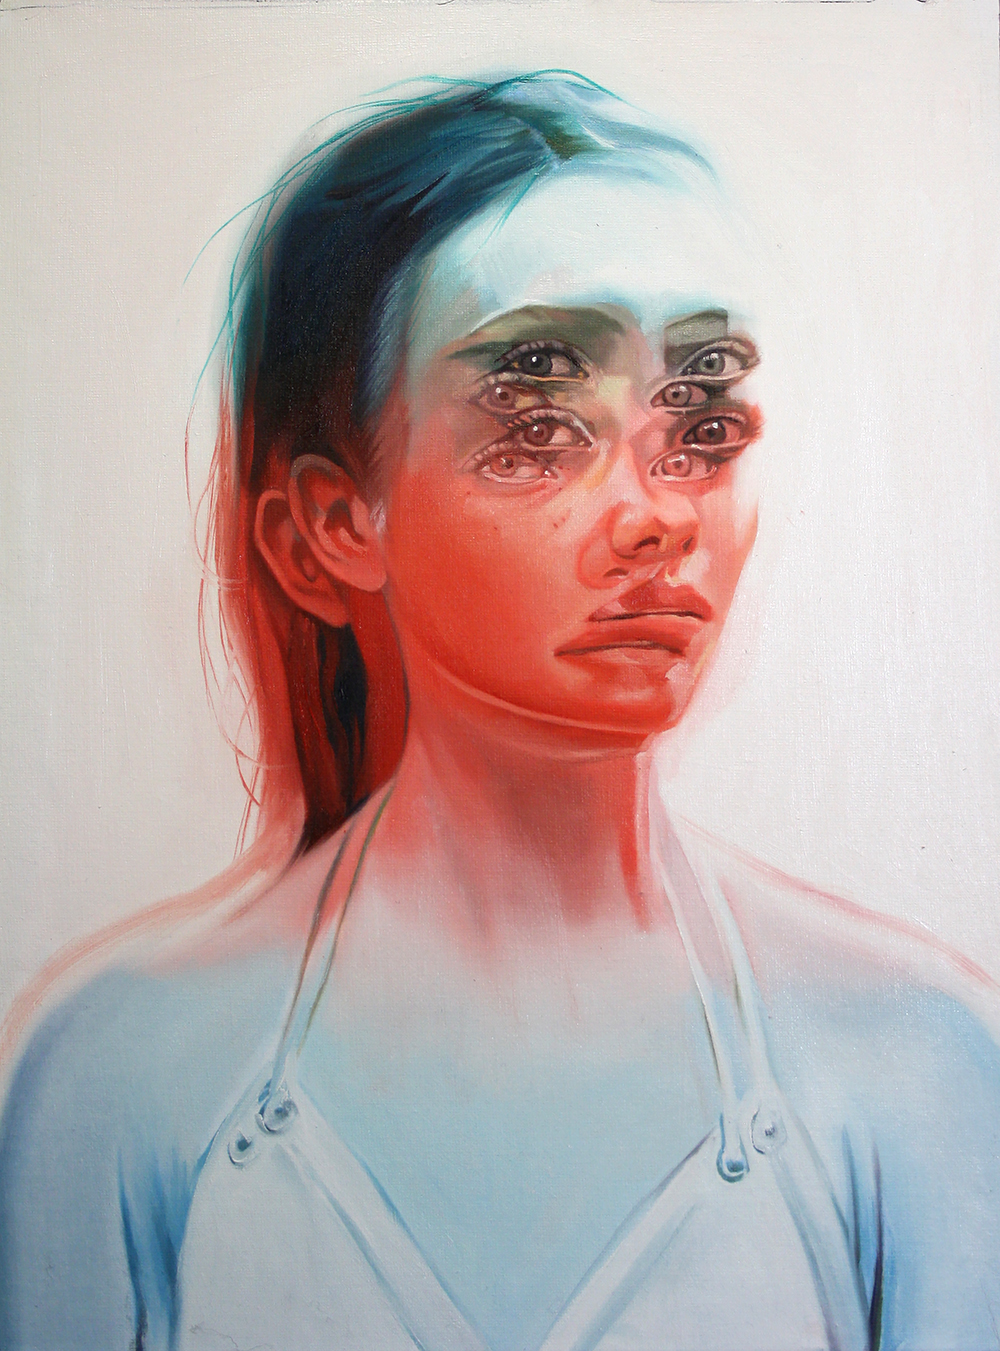 Alex Garant , artist, contemporary art, eyes, women, visual art, scandale project, scandaleproject,